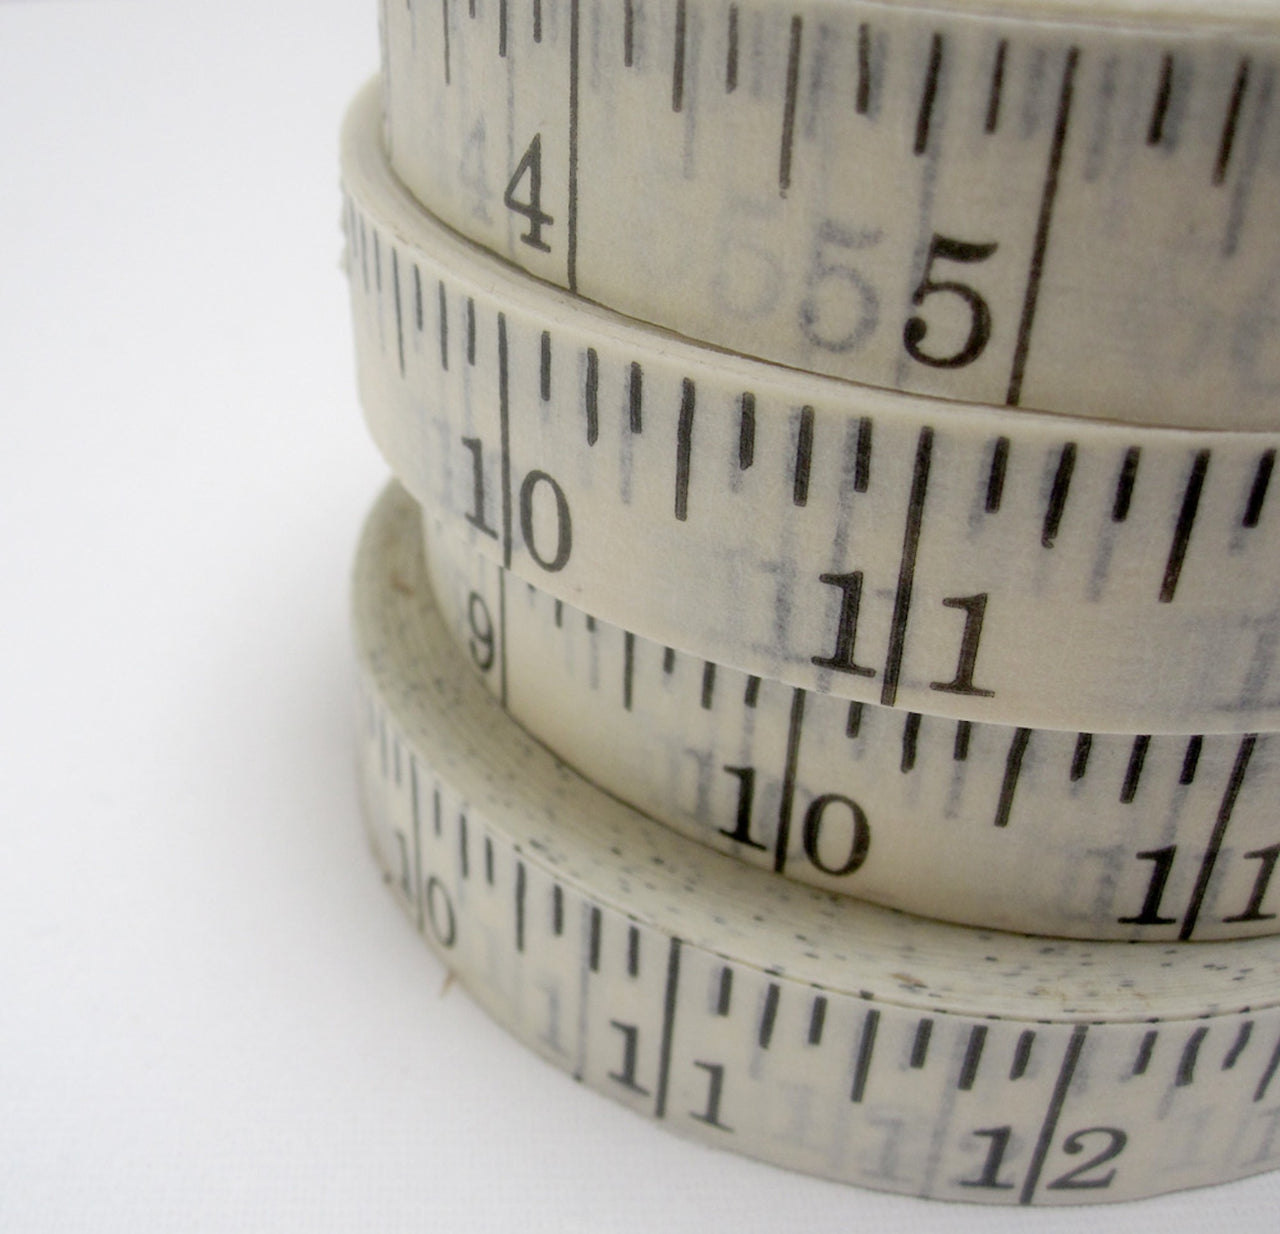 printed ruler tape